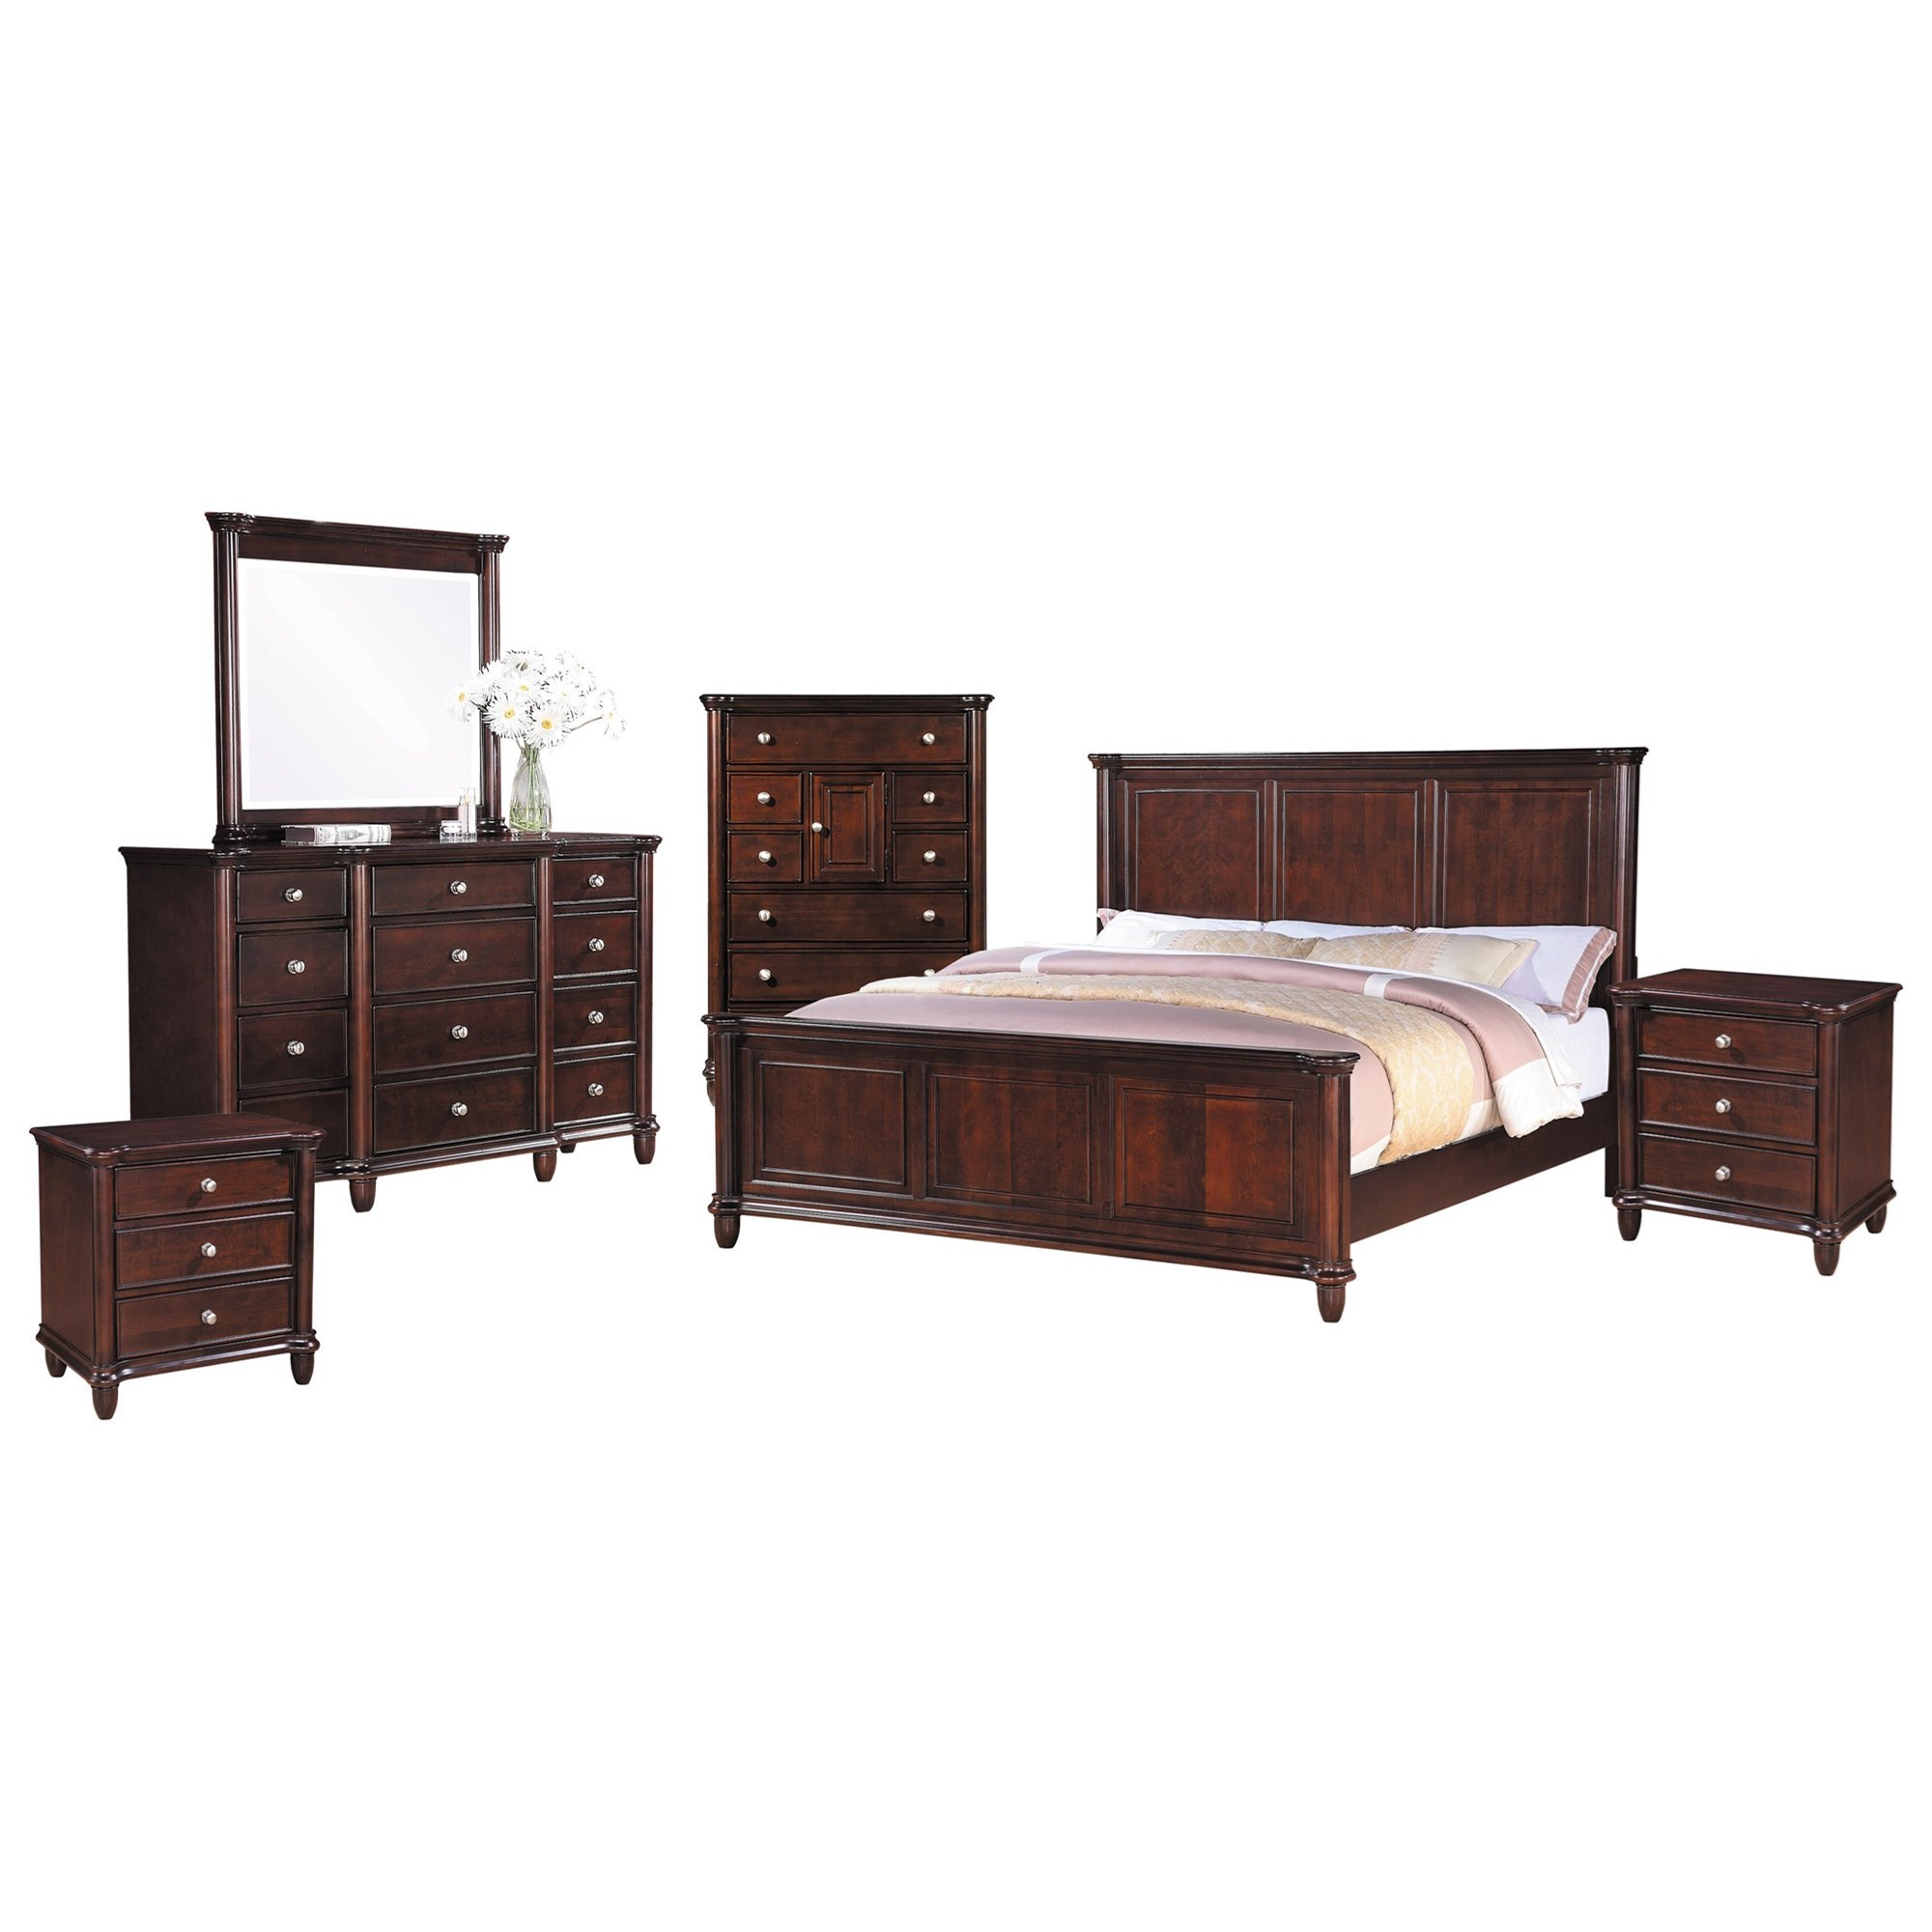 Hamilton King 6 Piece Bedroom Group by Elements International at Lindy's Furniture Company